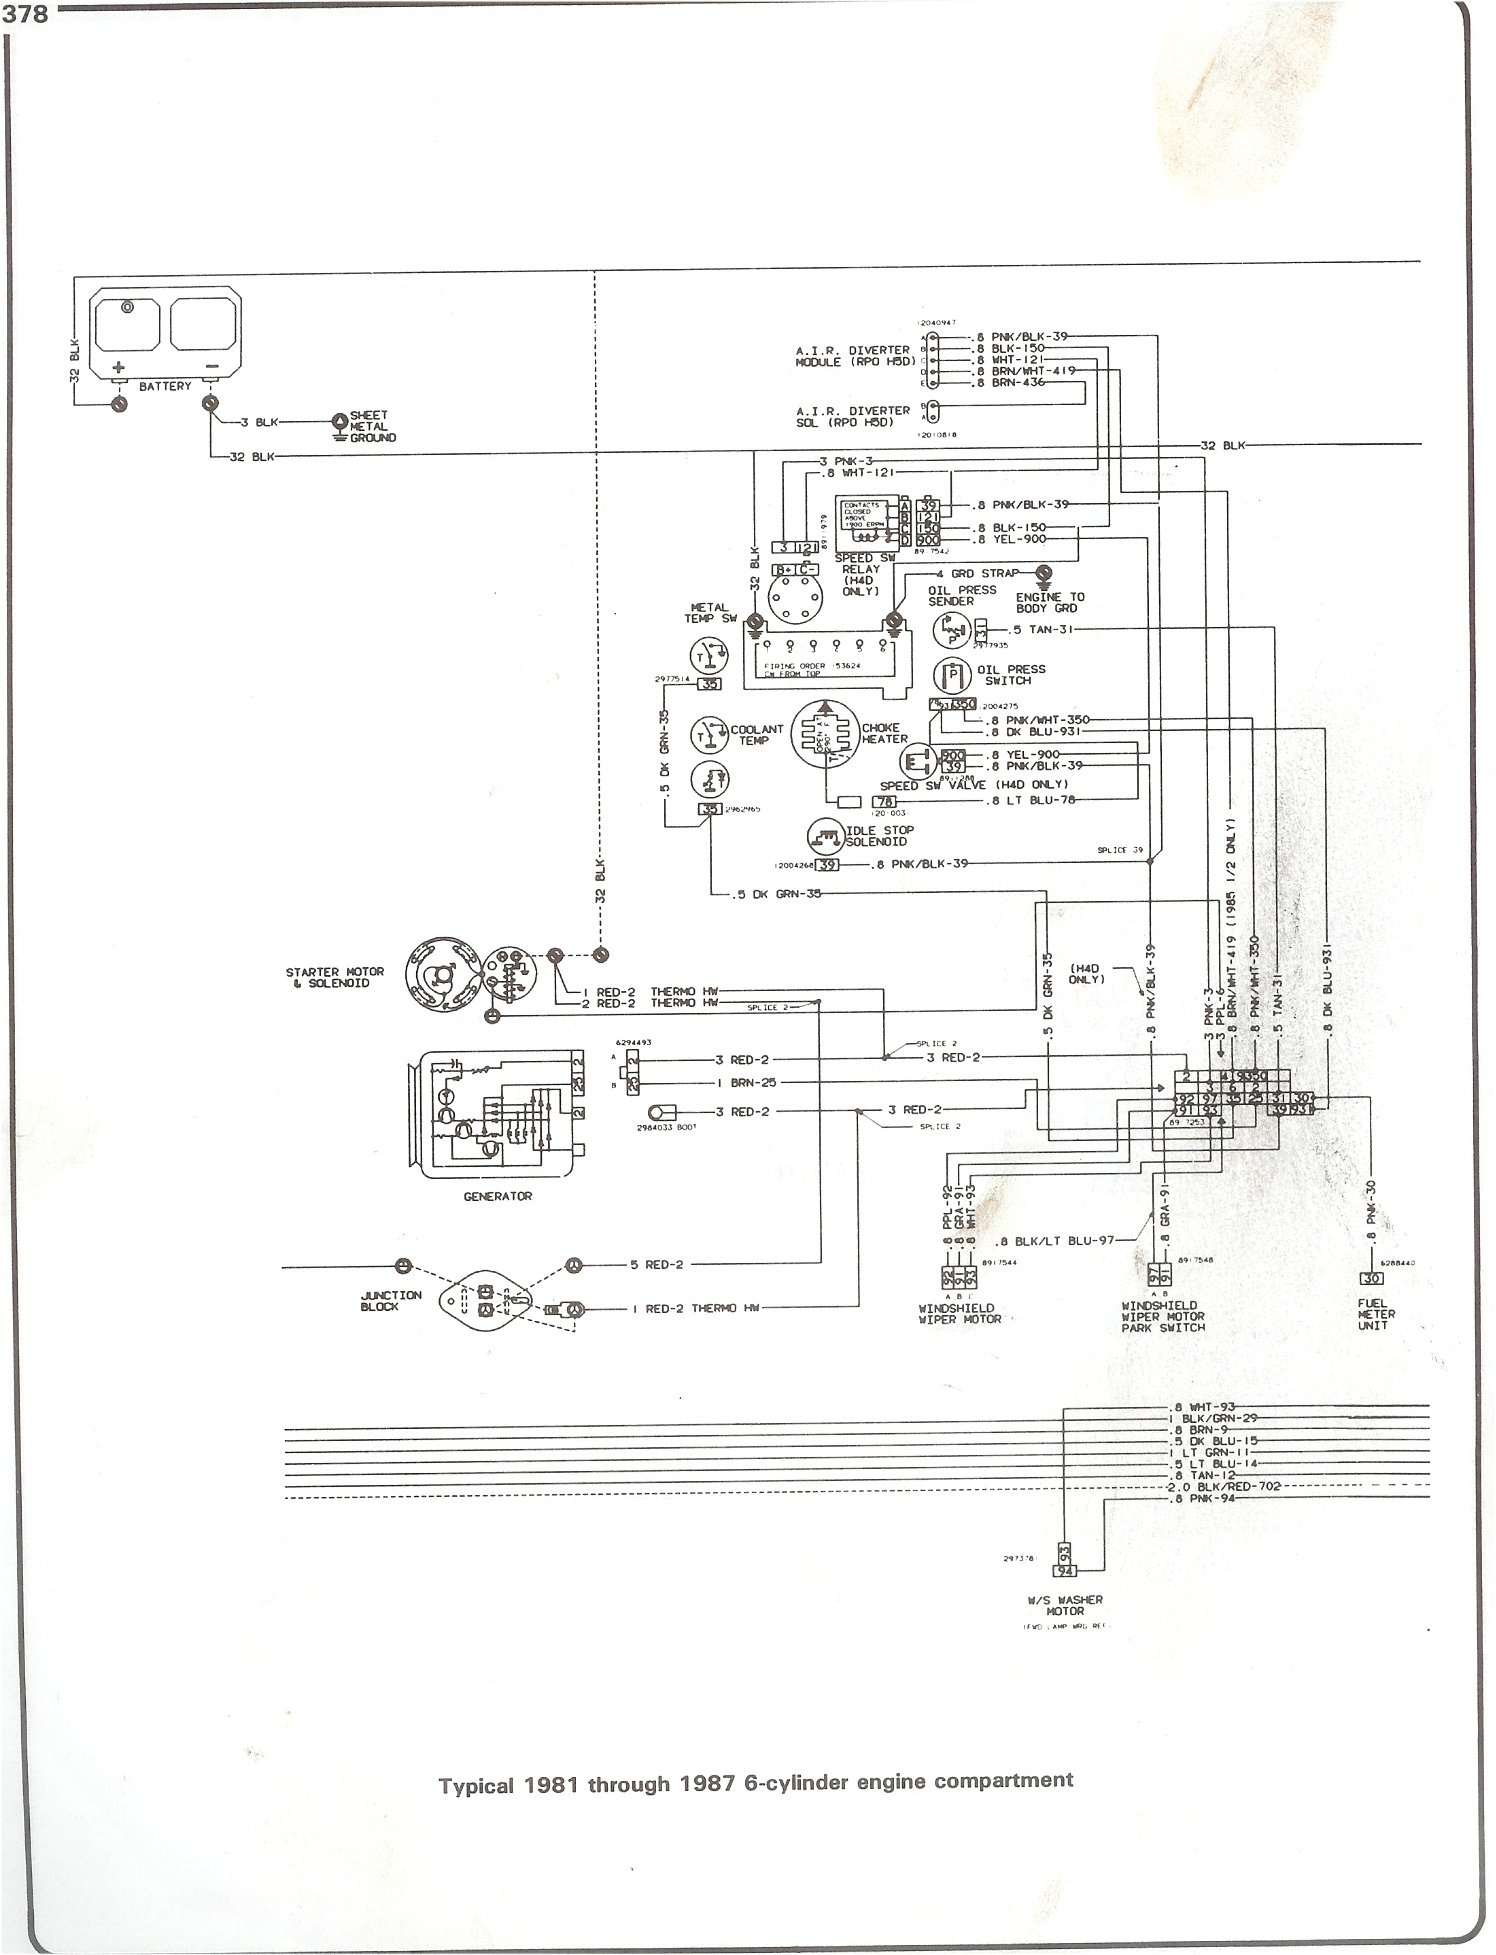 Complete 73 87 Wiring Diagrams Basic Ignition Diagram 300 Internation 81 I6 Engine Compartment